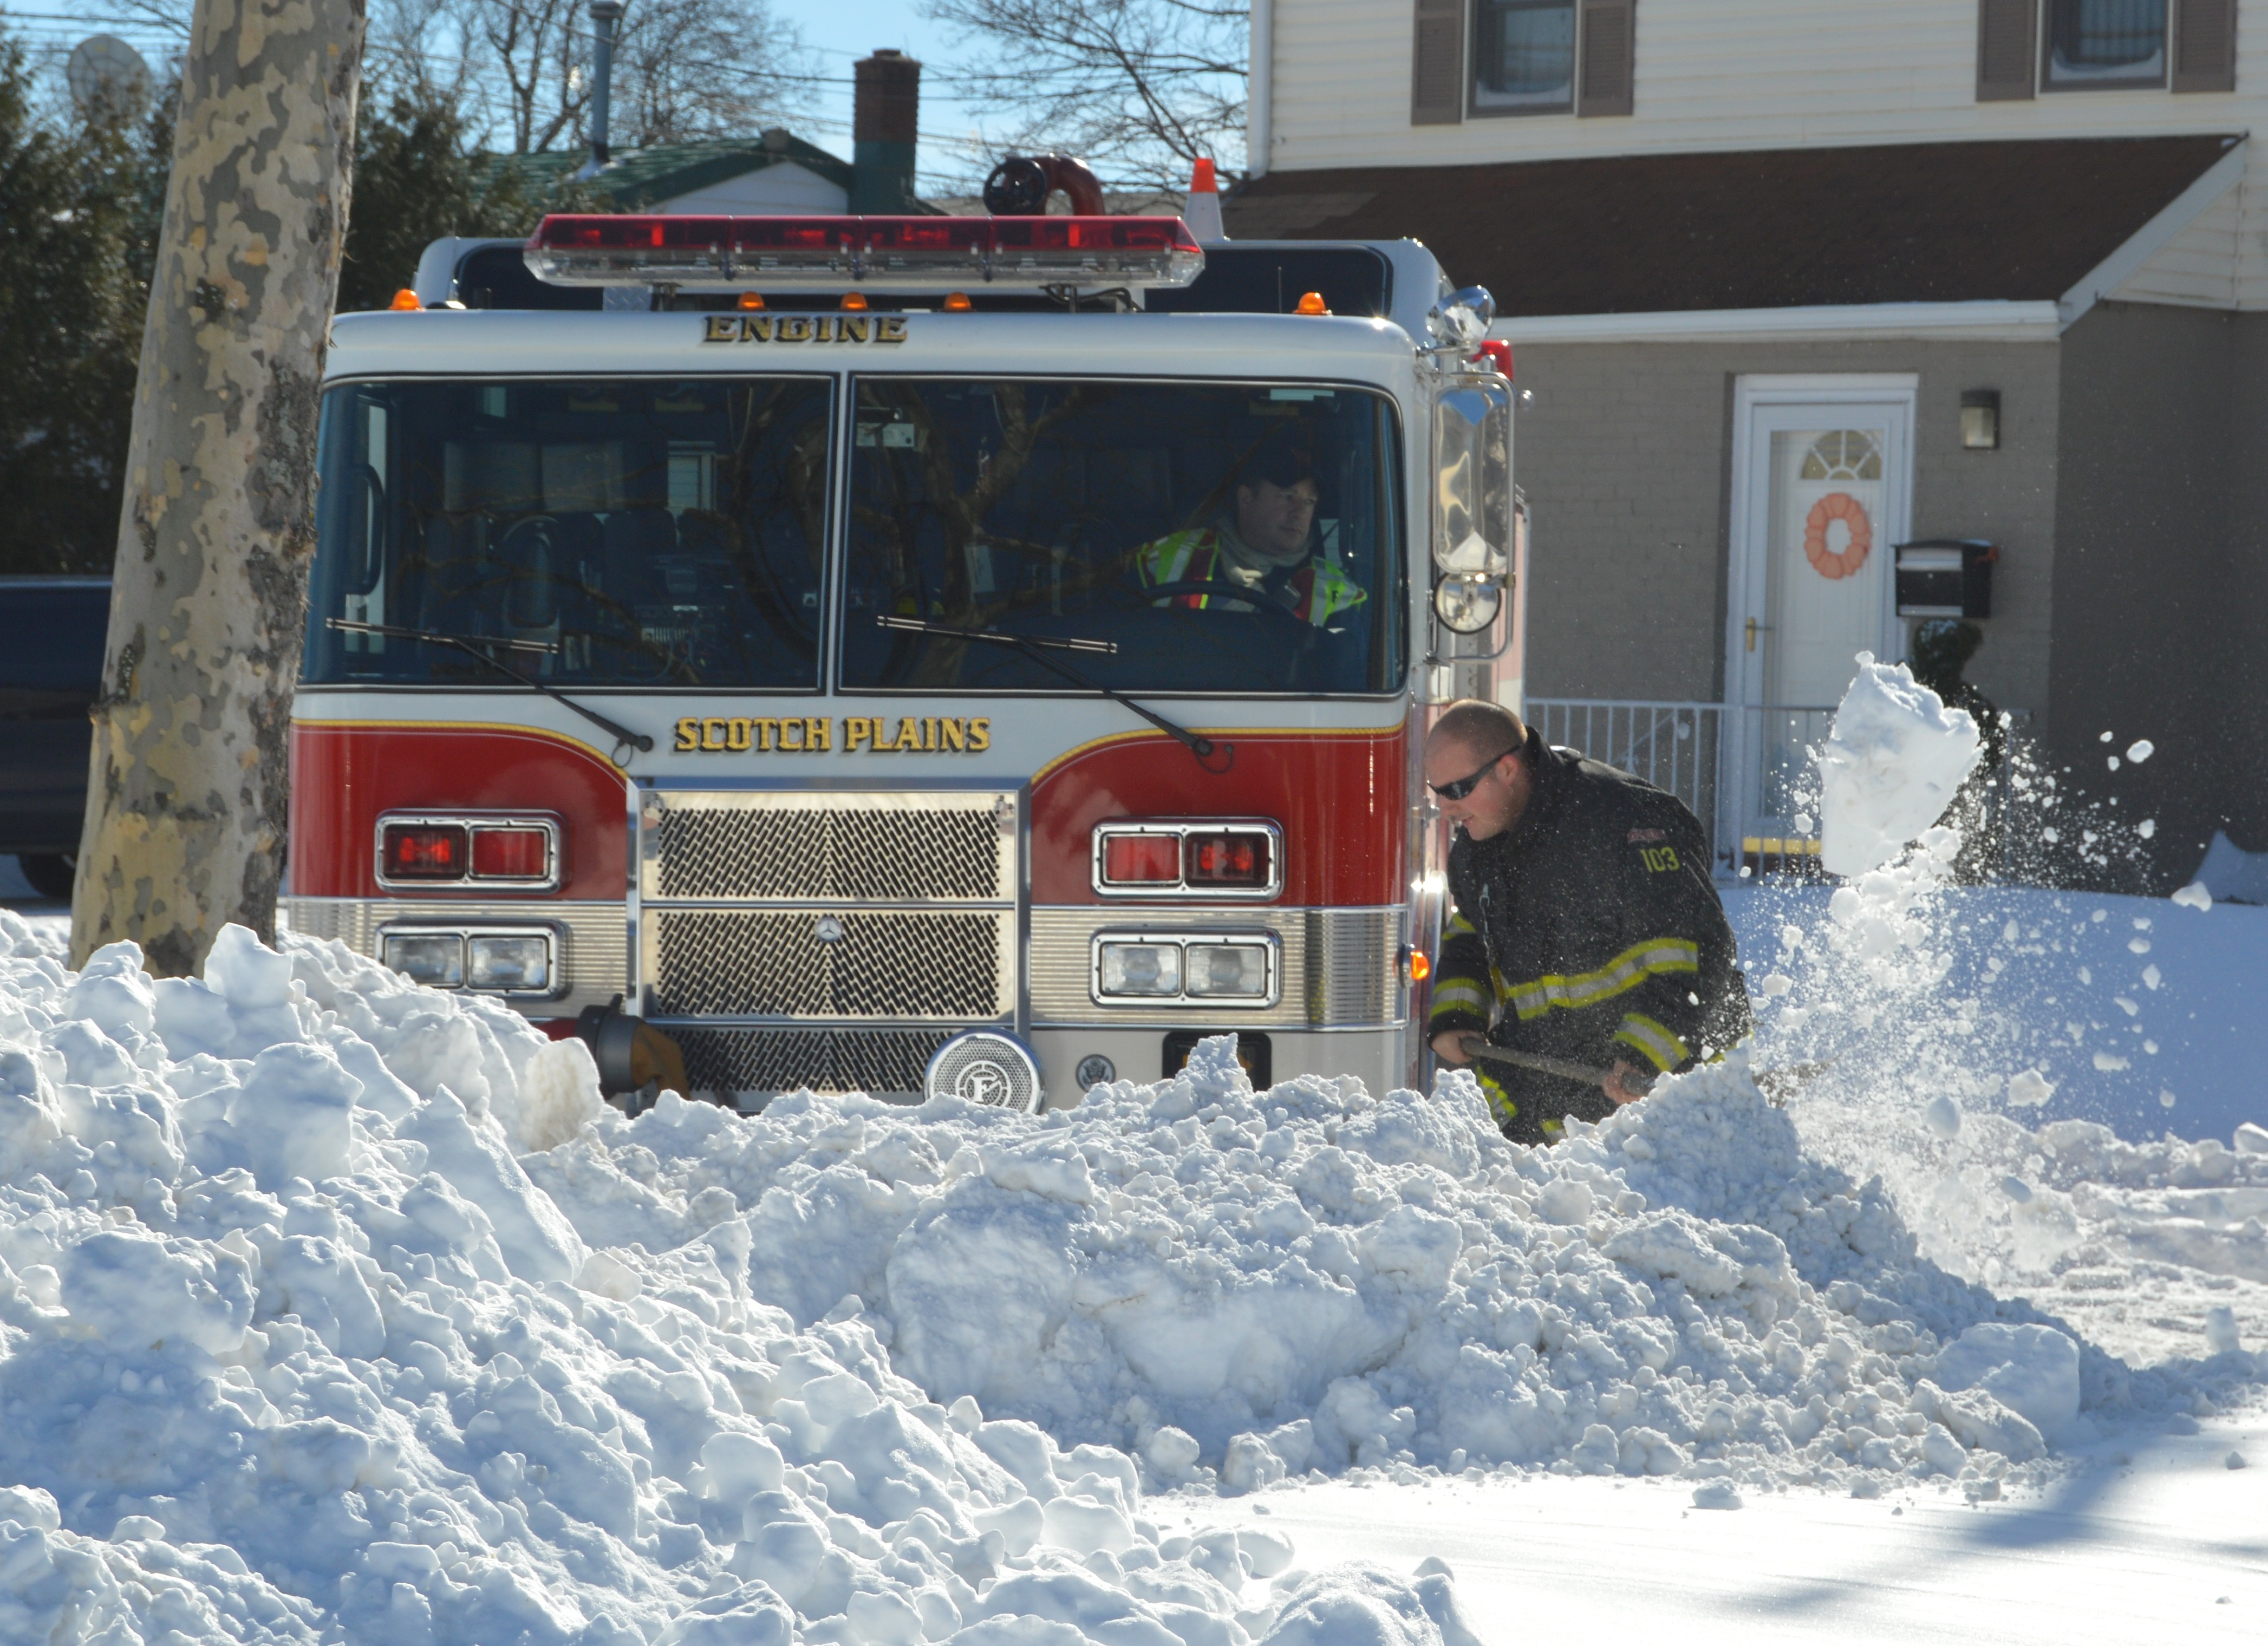 a5924601c886391f38d9_Firefighter_digs_out_rig_1-24-16.JPG